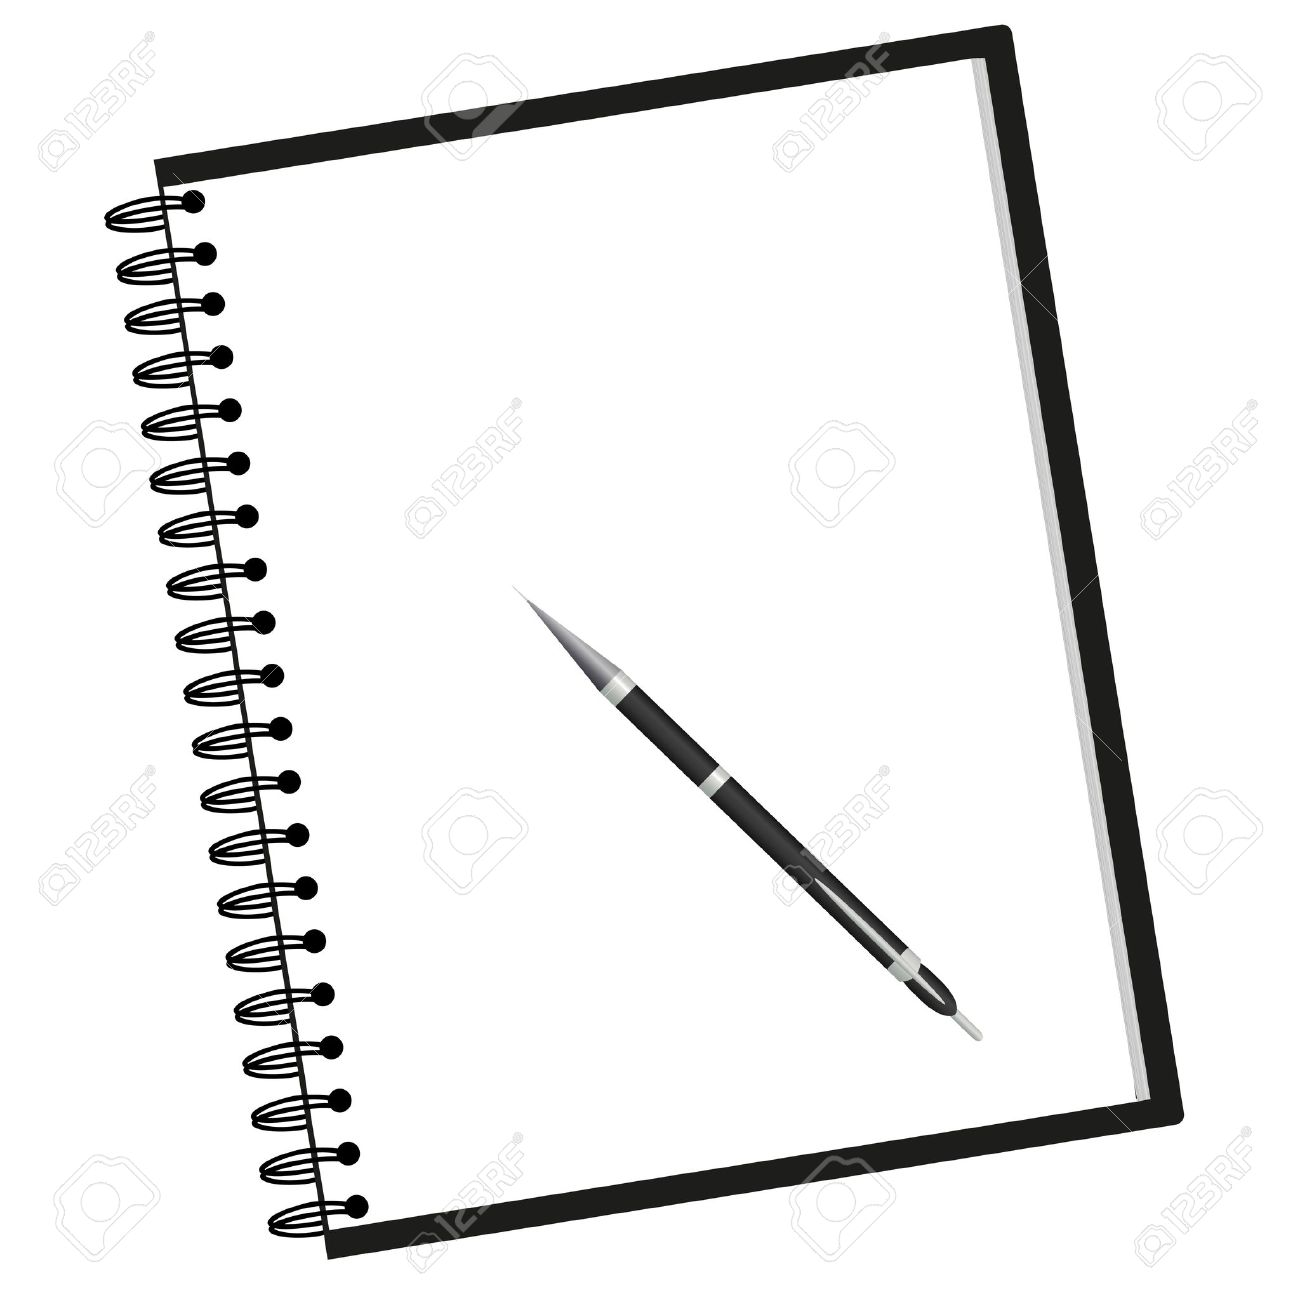 Notebook Clipart Black And White